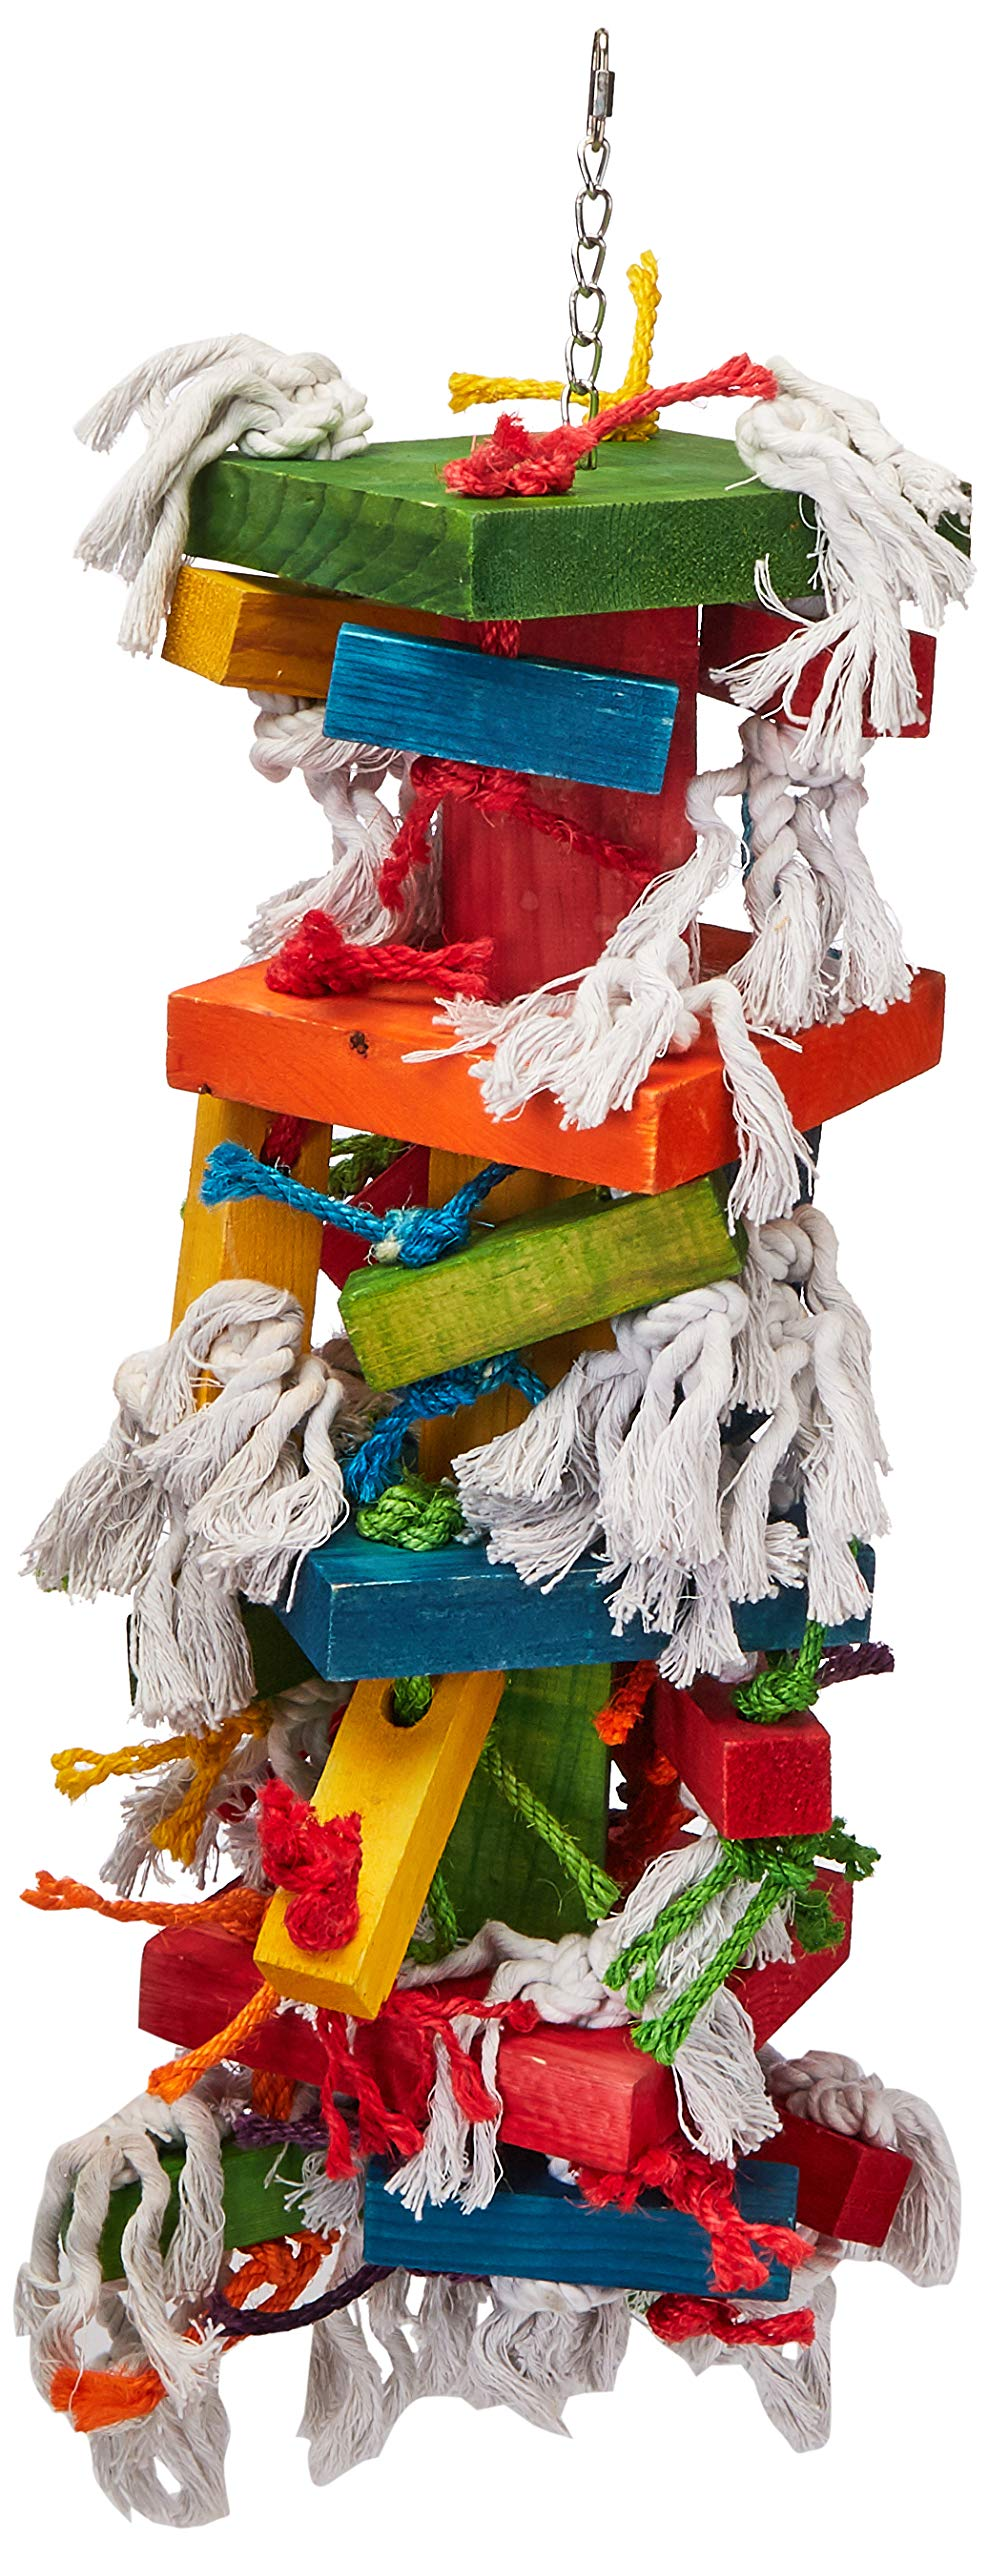 Paradise Knots &Blocks Chewing Toy, Colorful & Entertaining, Keeps Birdy Happy, X-Large, 22'' x 8'' x 8'' by Paradise